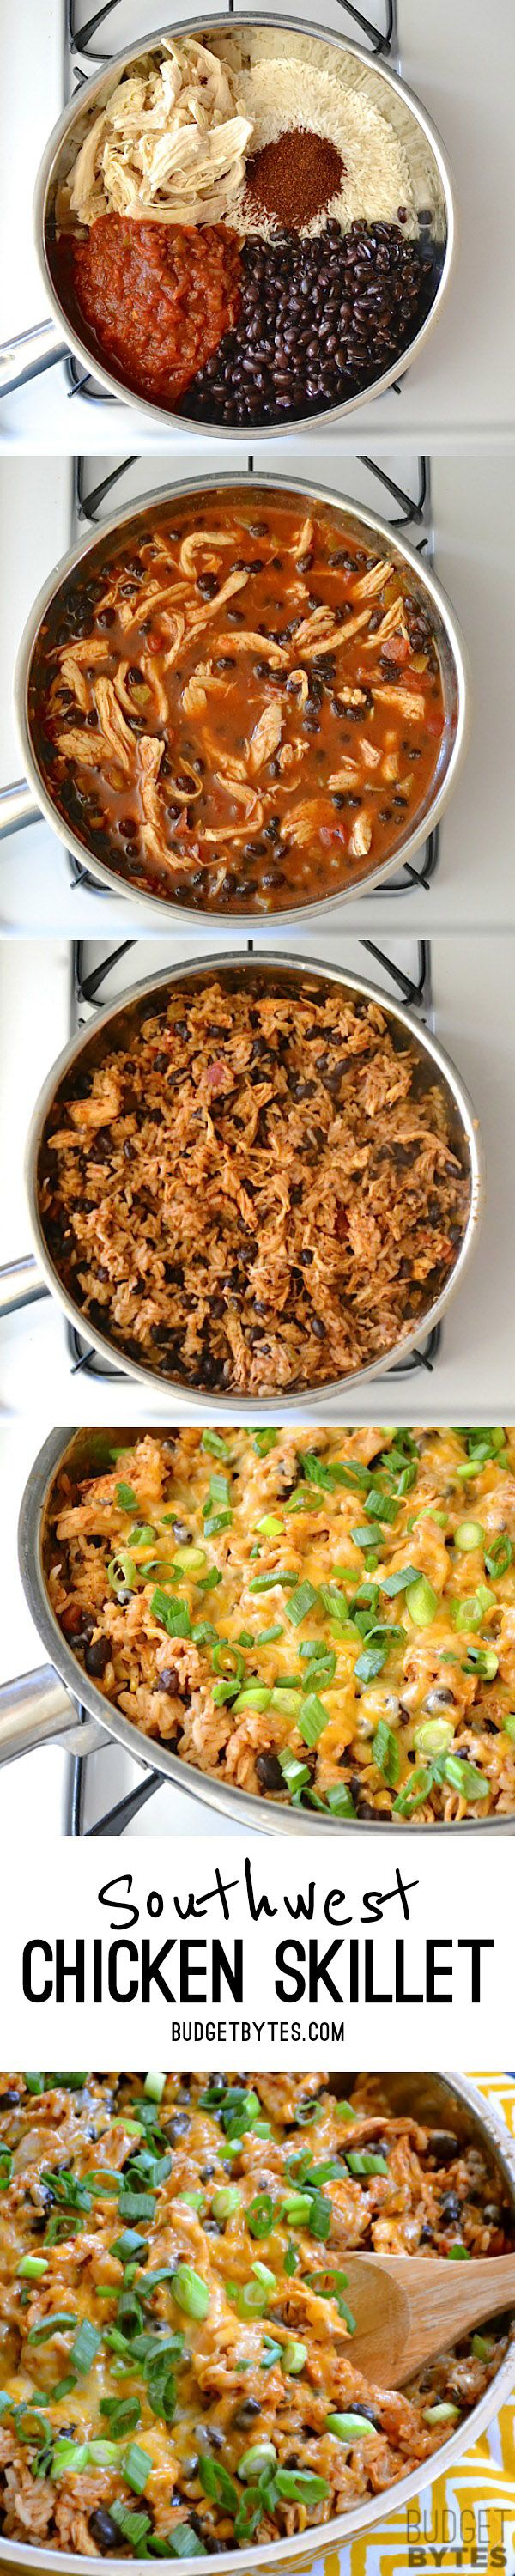 If you're looking for a quick and easy dinner, this Southwest Chicken Skillet is it! Precooked chicken makes this dinner possible in about 30 minutes. BudgetBytes.com #chickenbreastrecipeseasy